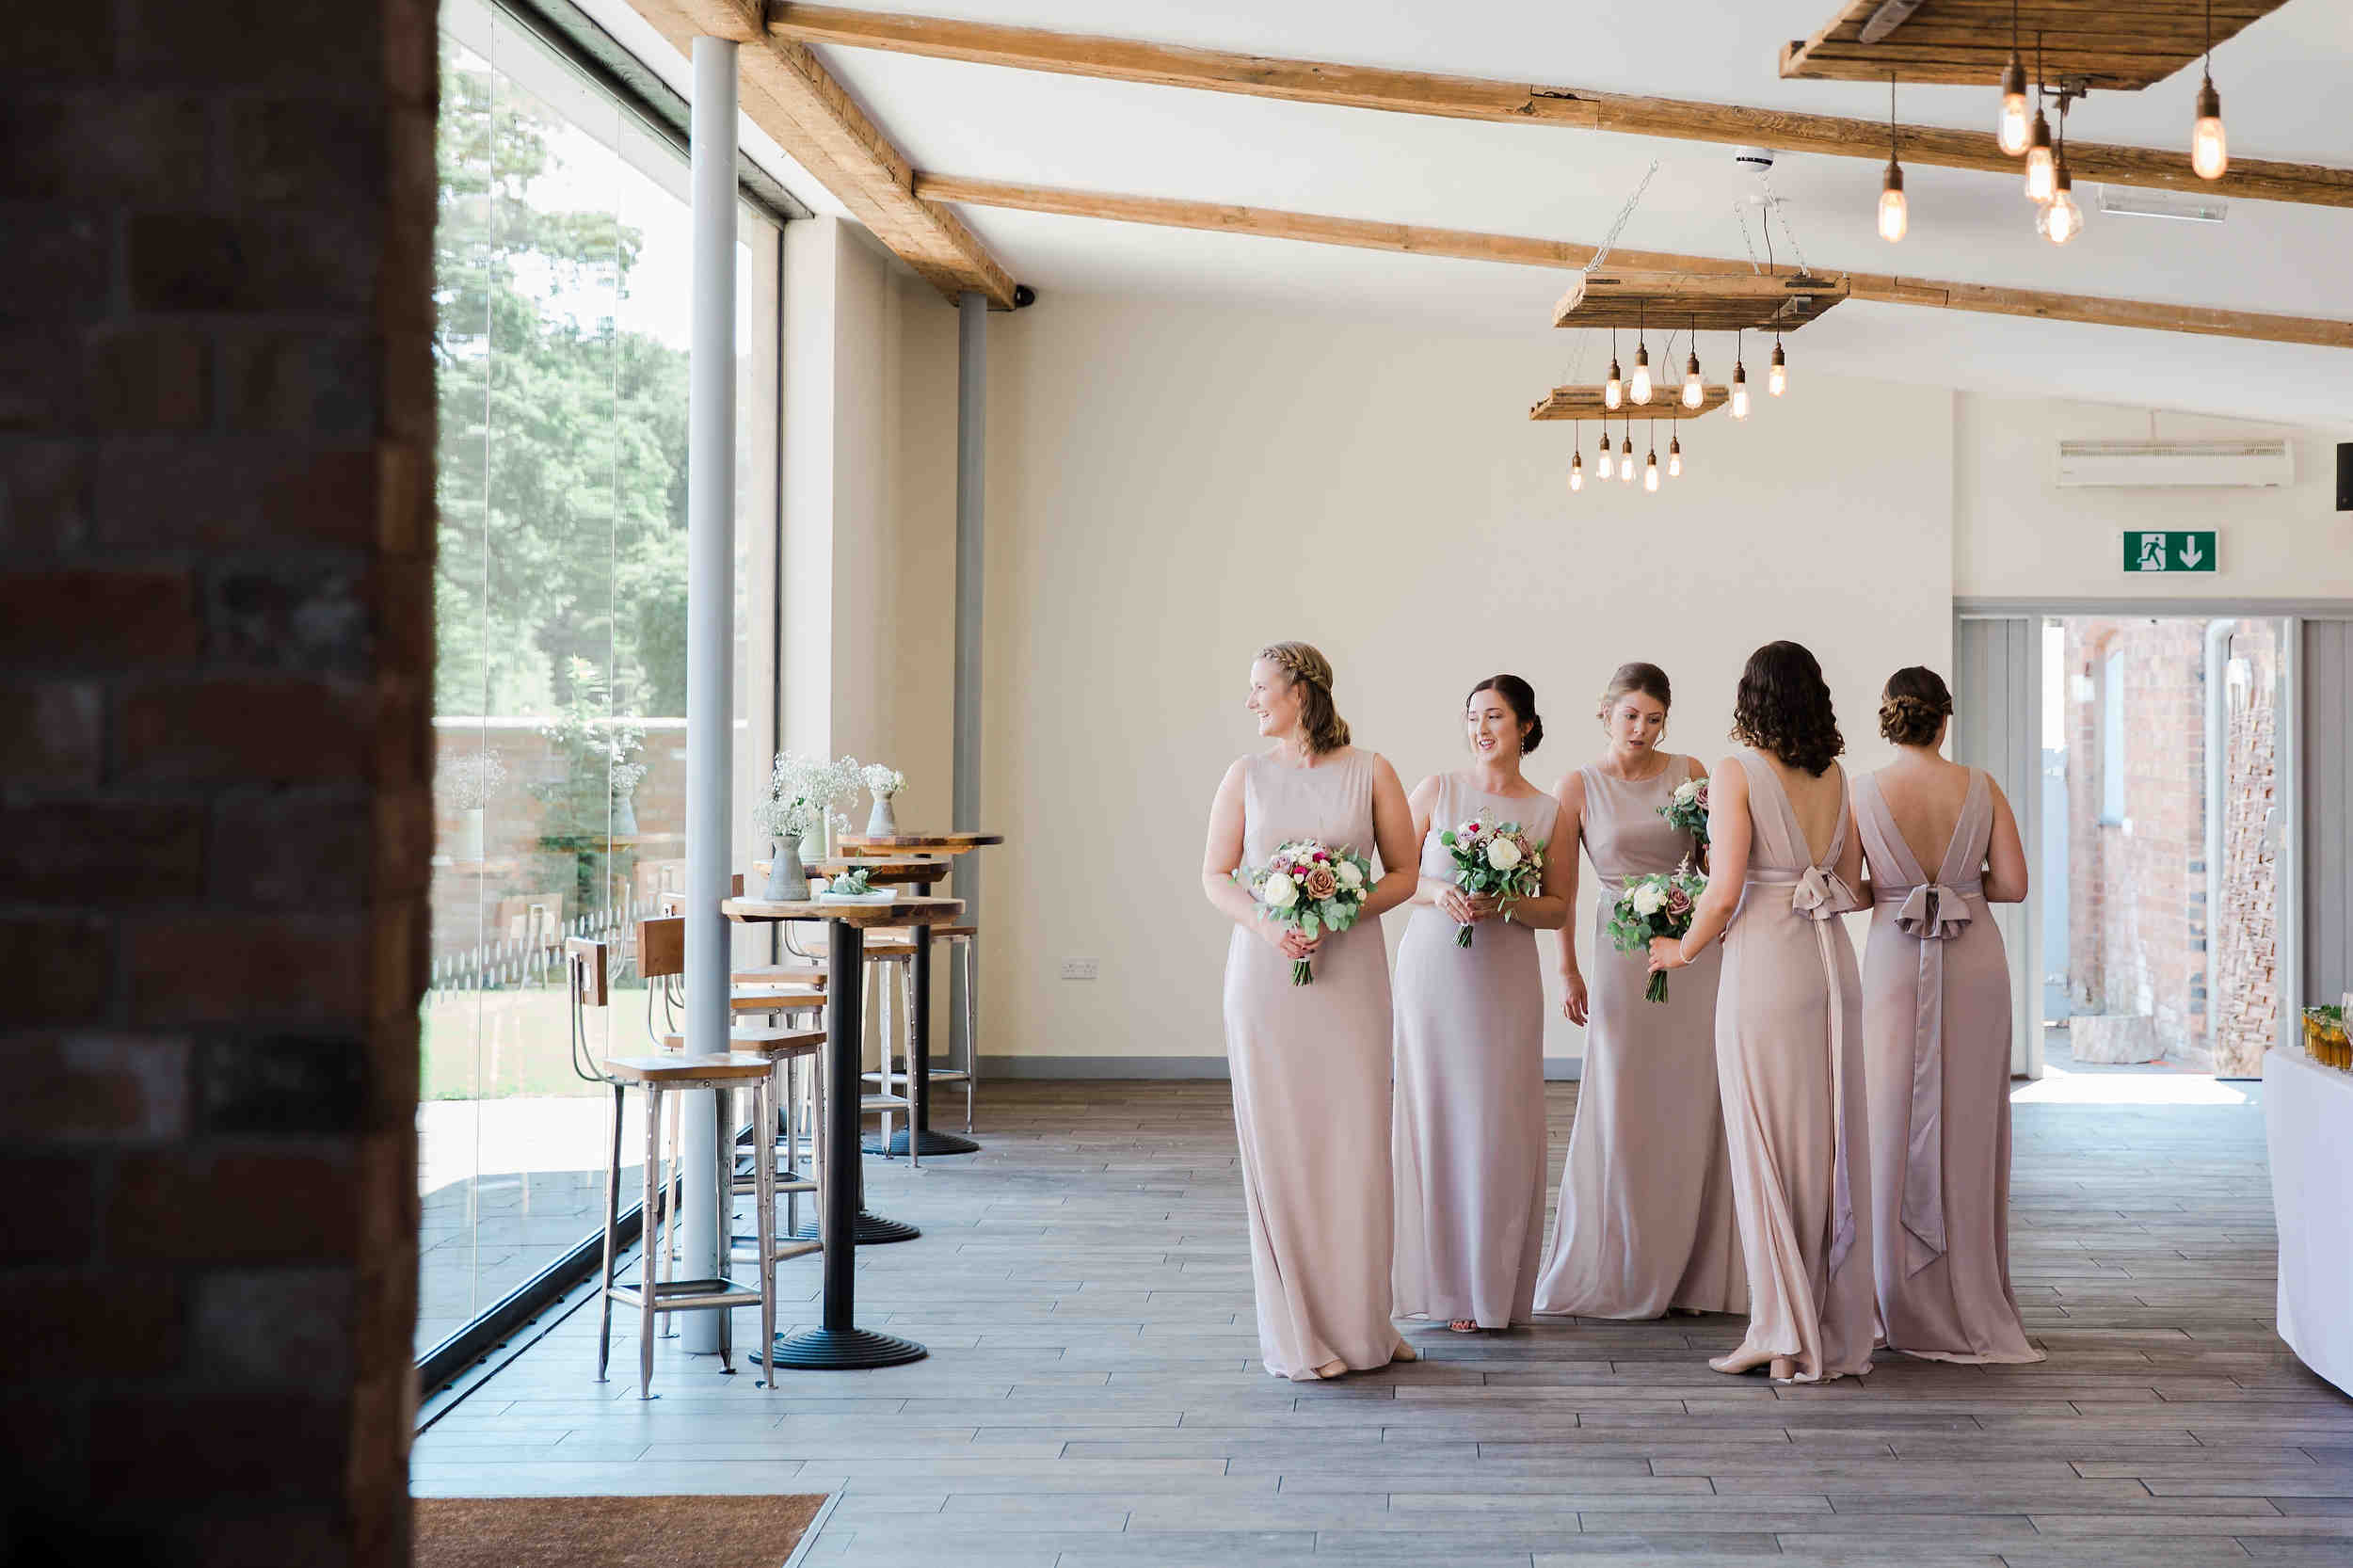 bridesmaids wait for bride in nude bridesmaid gowns